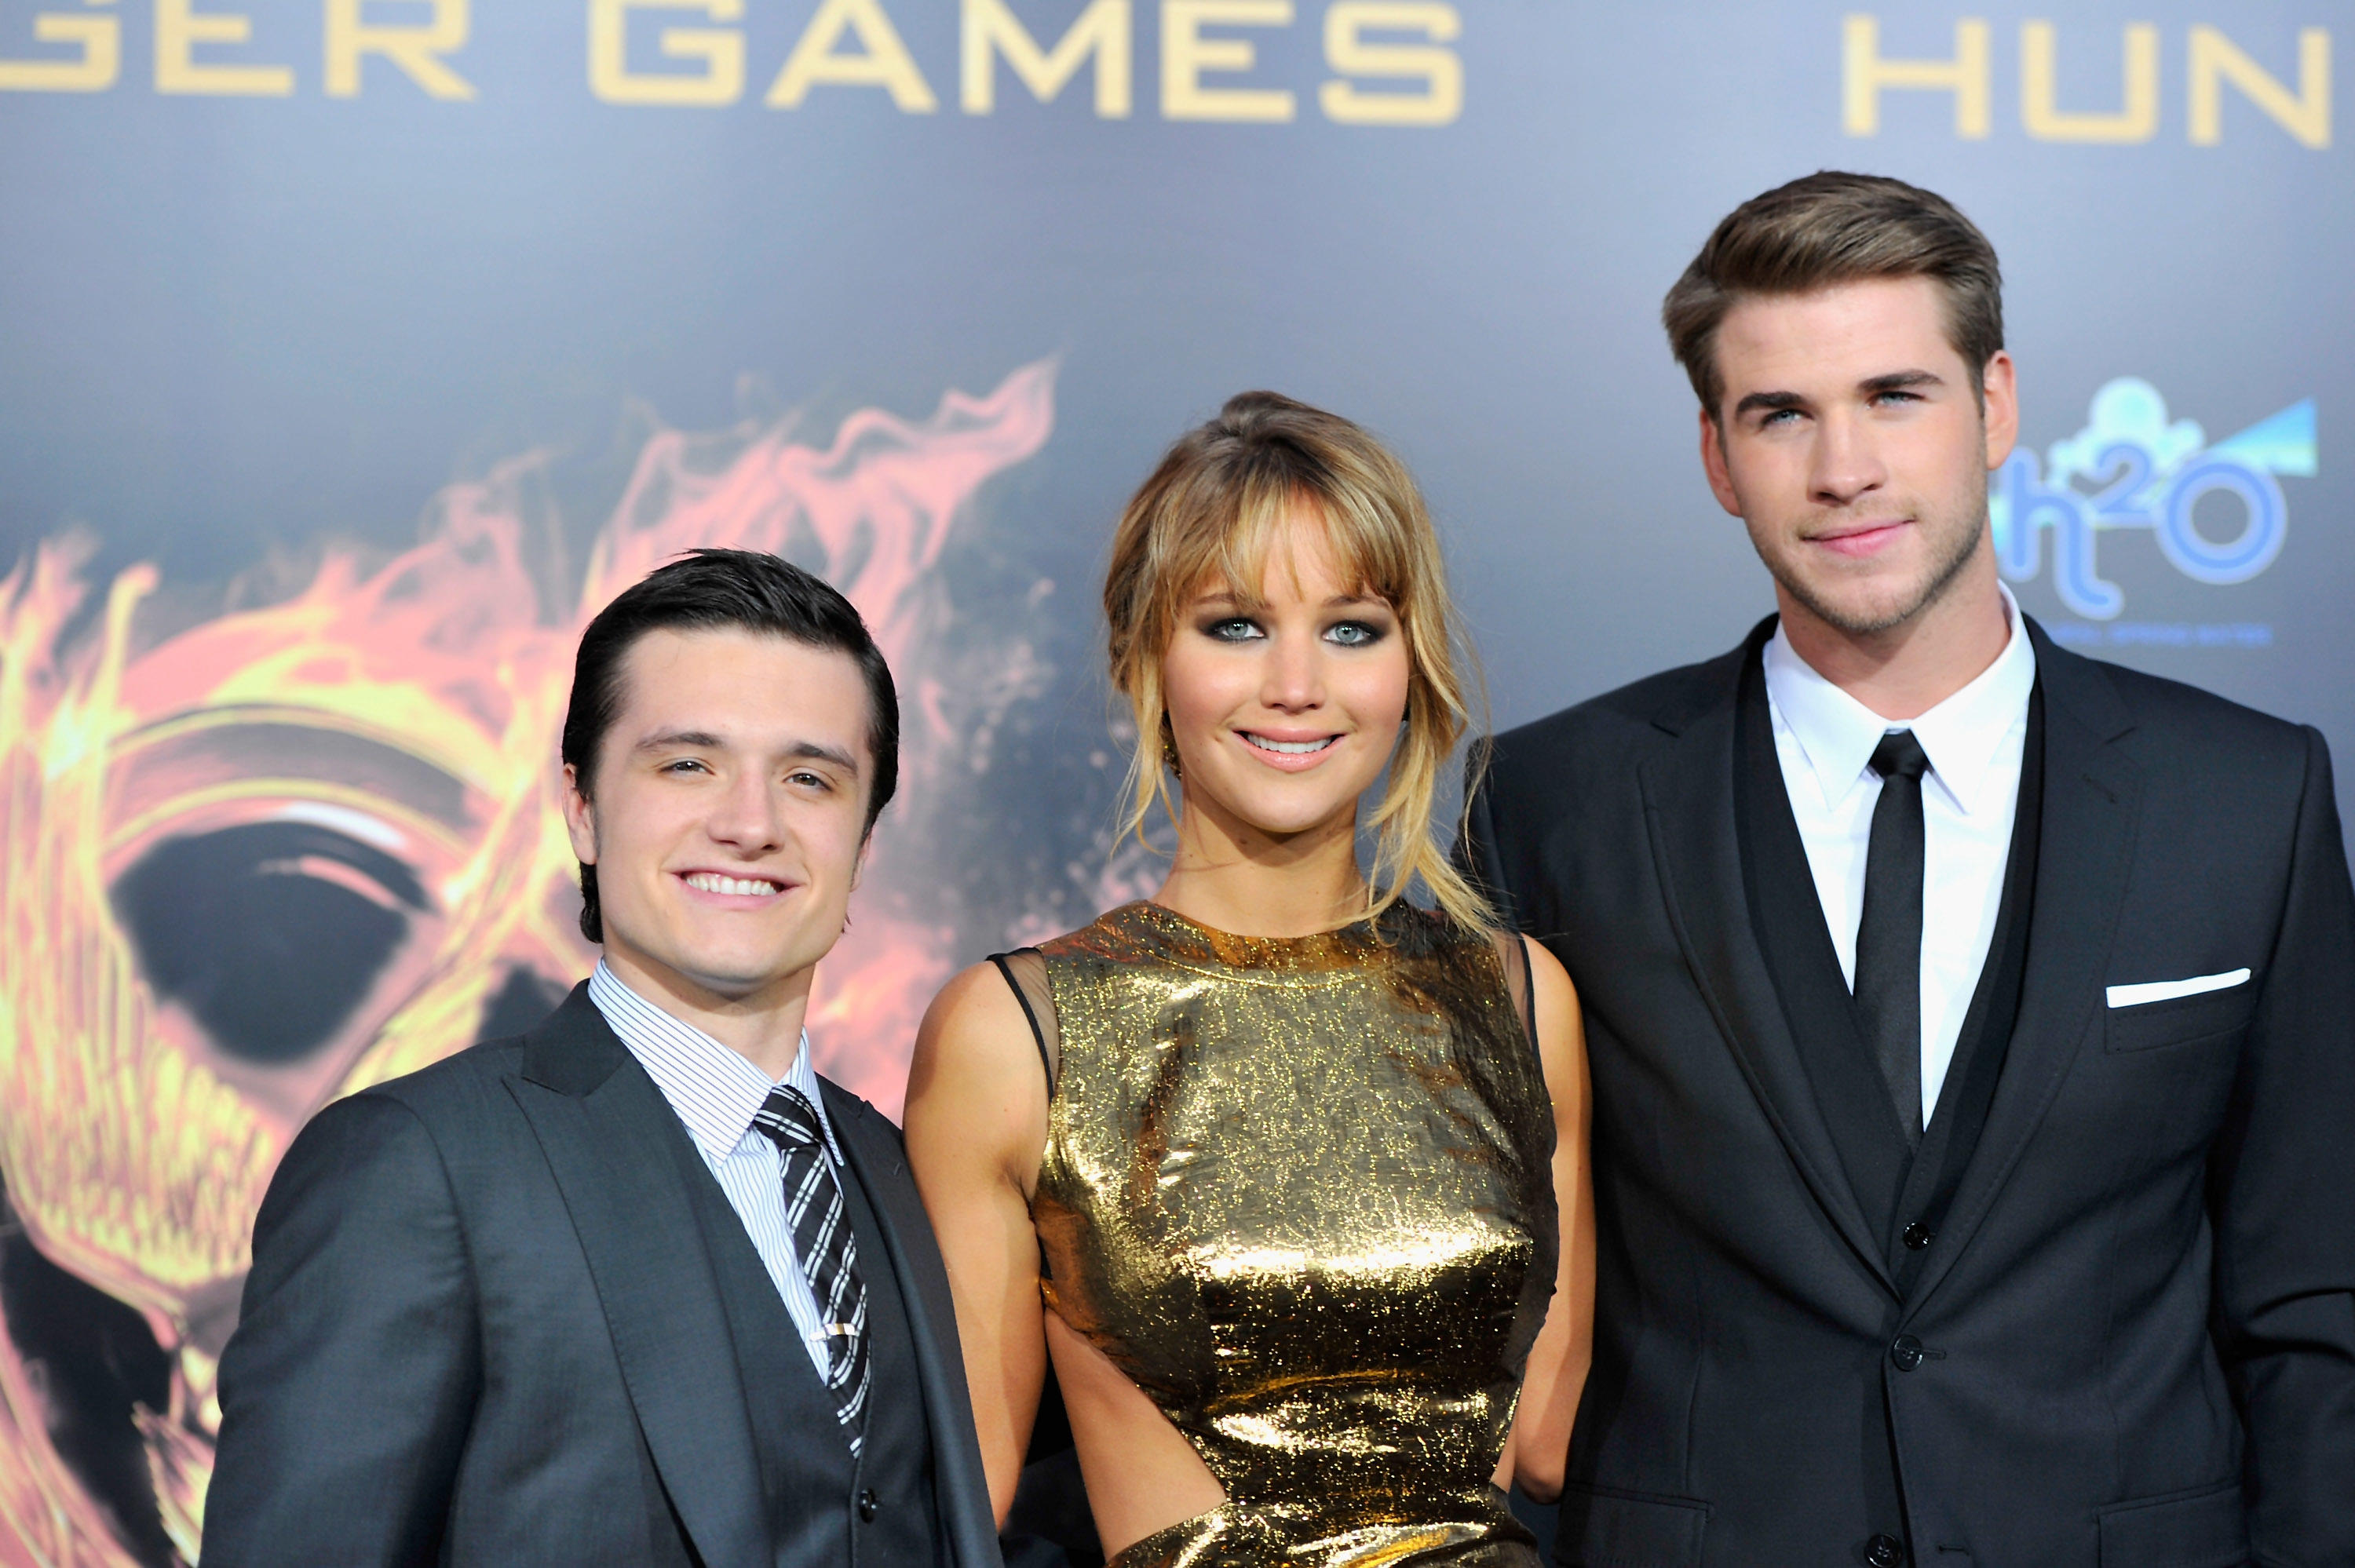 The Hunger Games 2012 World Premiere